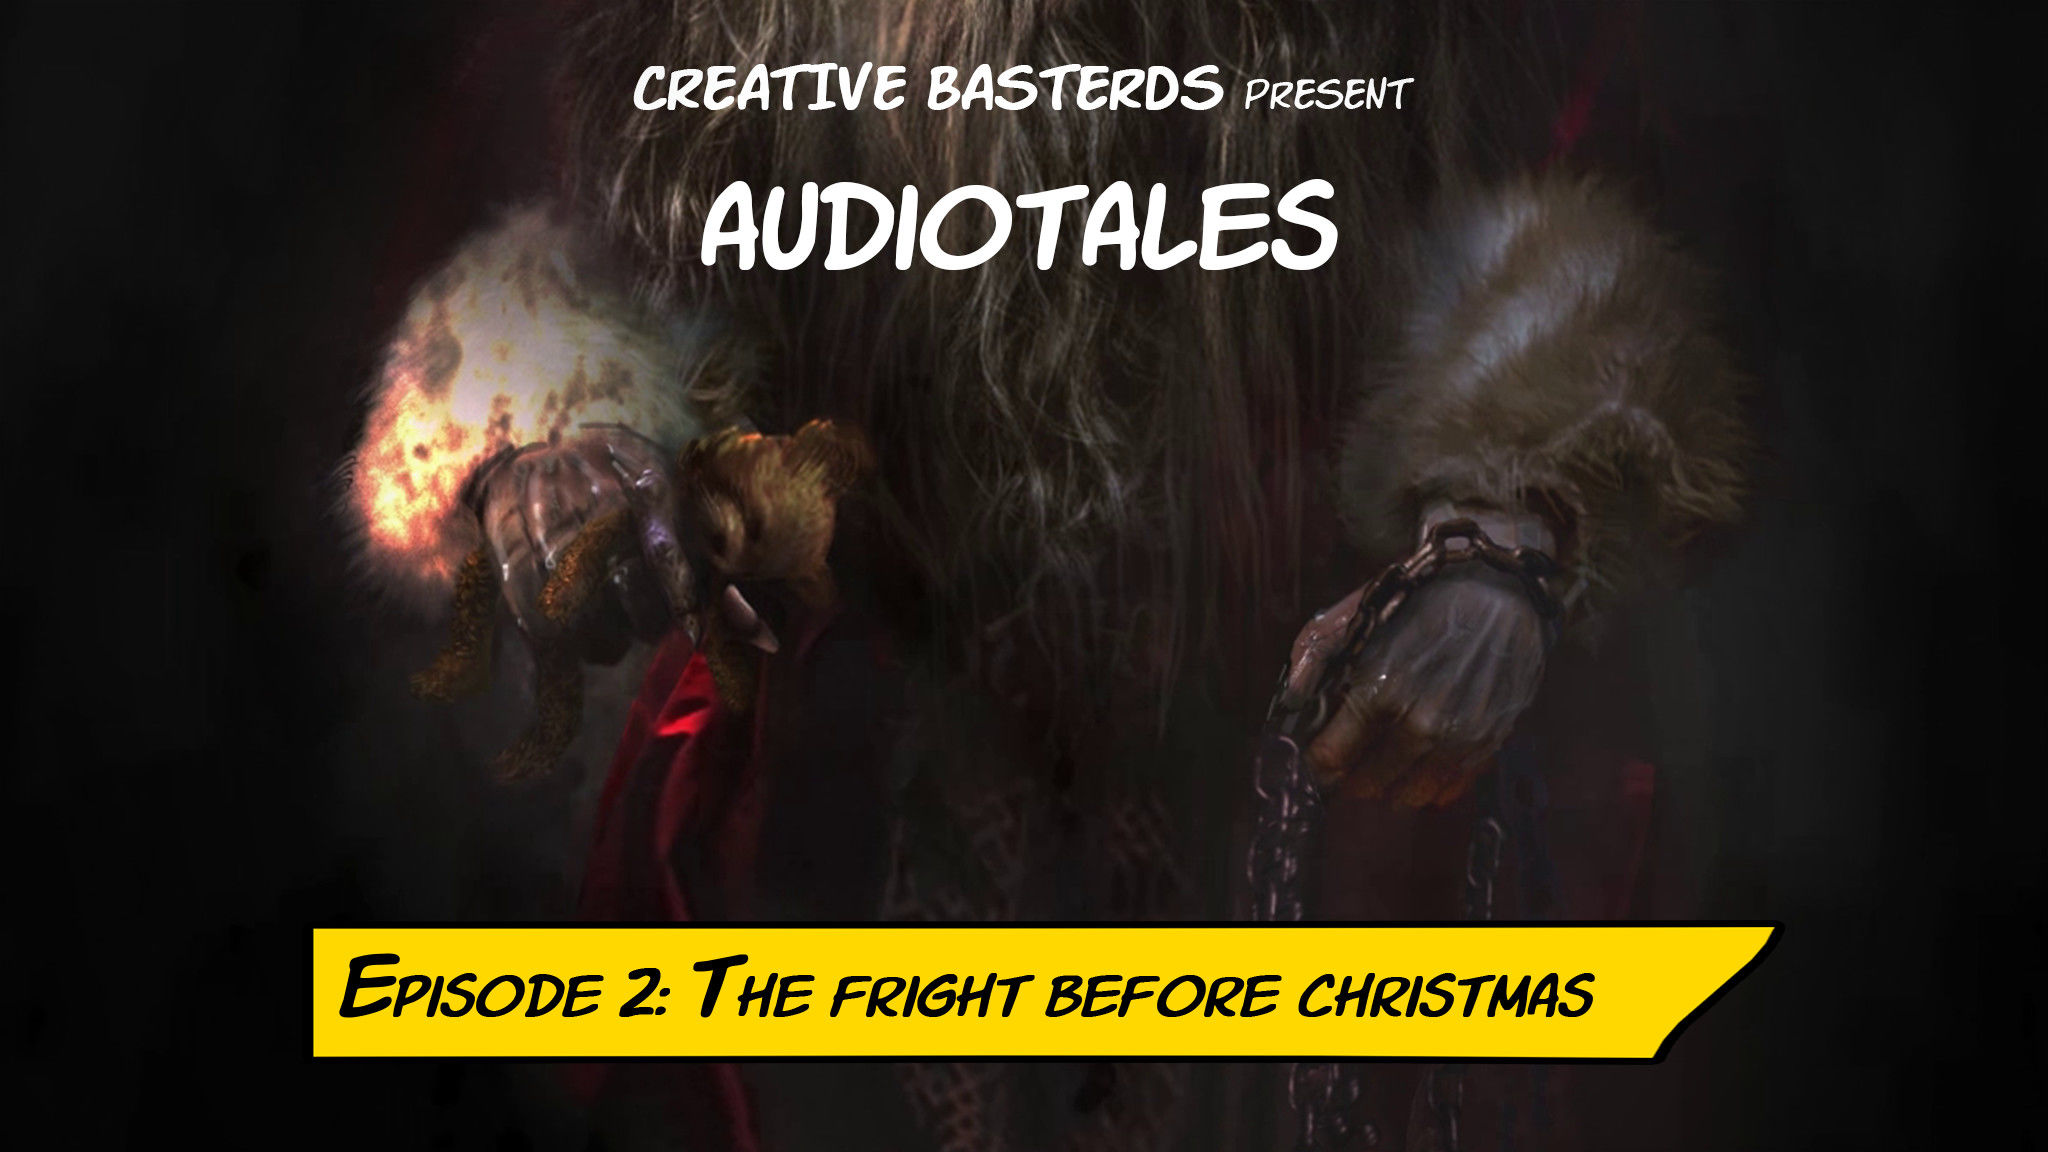 Audiotales - The Fright Before Christmas